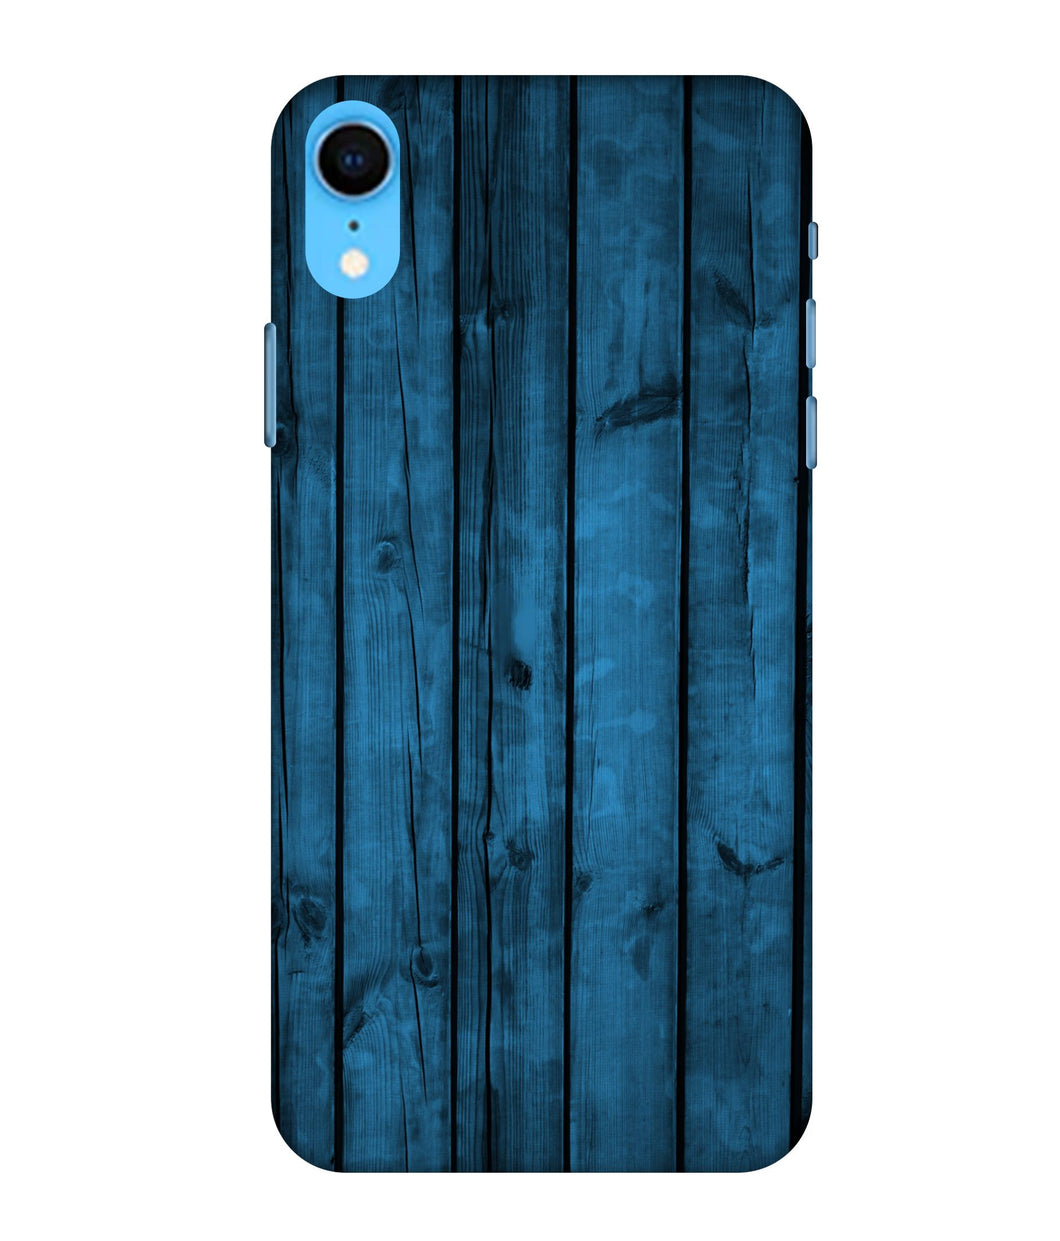 Apple Iphone XR Bluewoods mobile cover